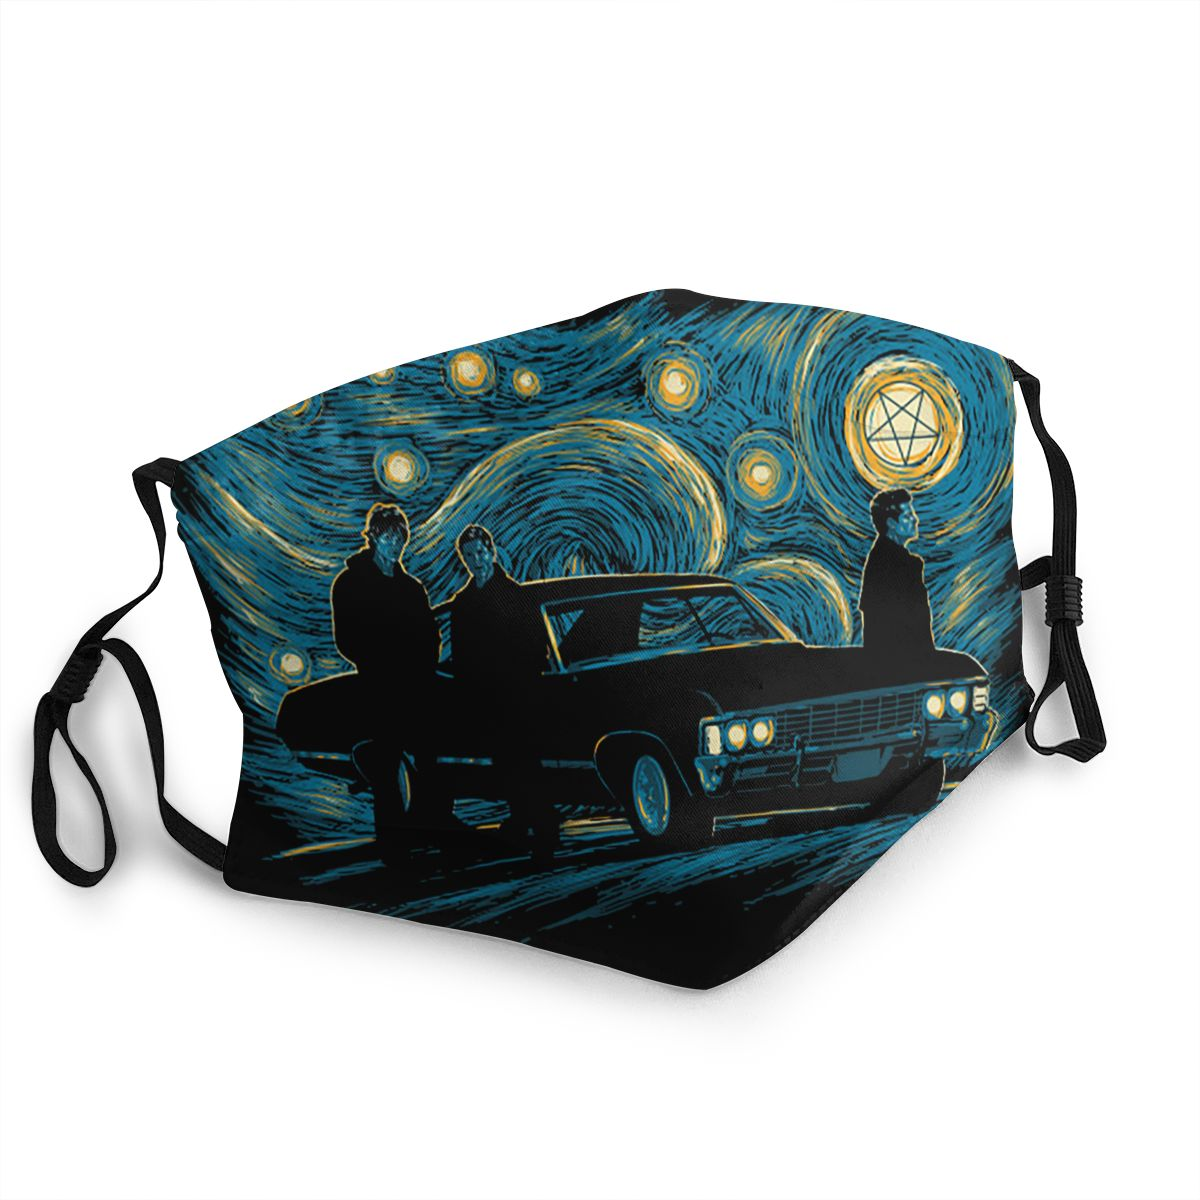 Supernatural Night Reusable Mouth Face Mask Van Gogh Starry Night Anti Haze Dust Mask Protection Mask Respirator Mouth Muffle